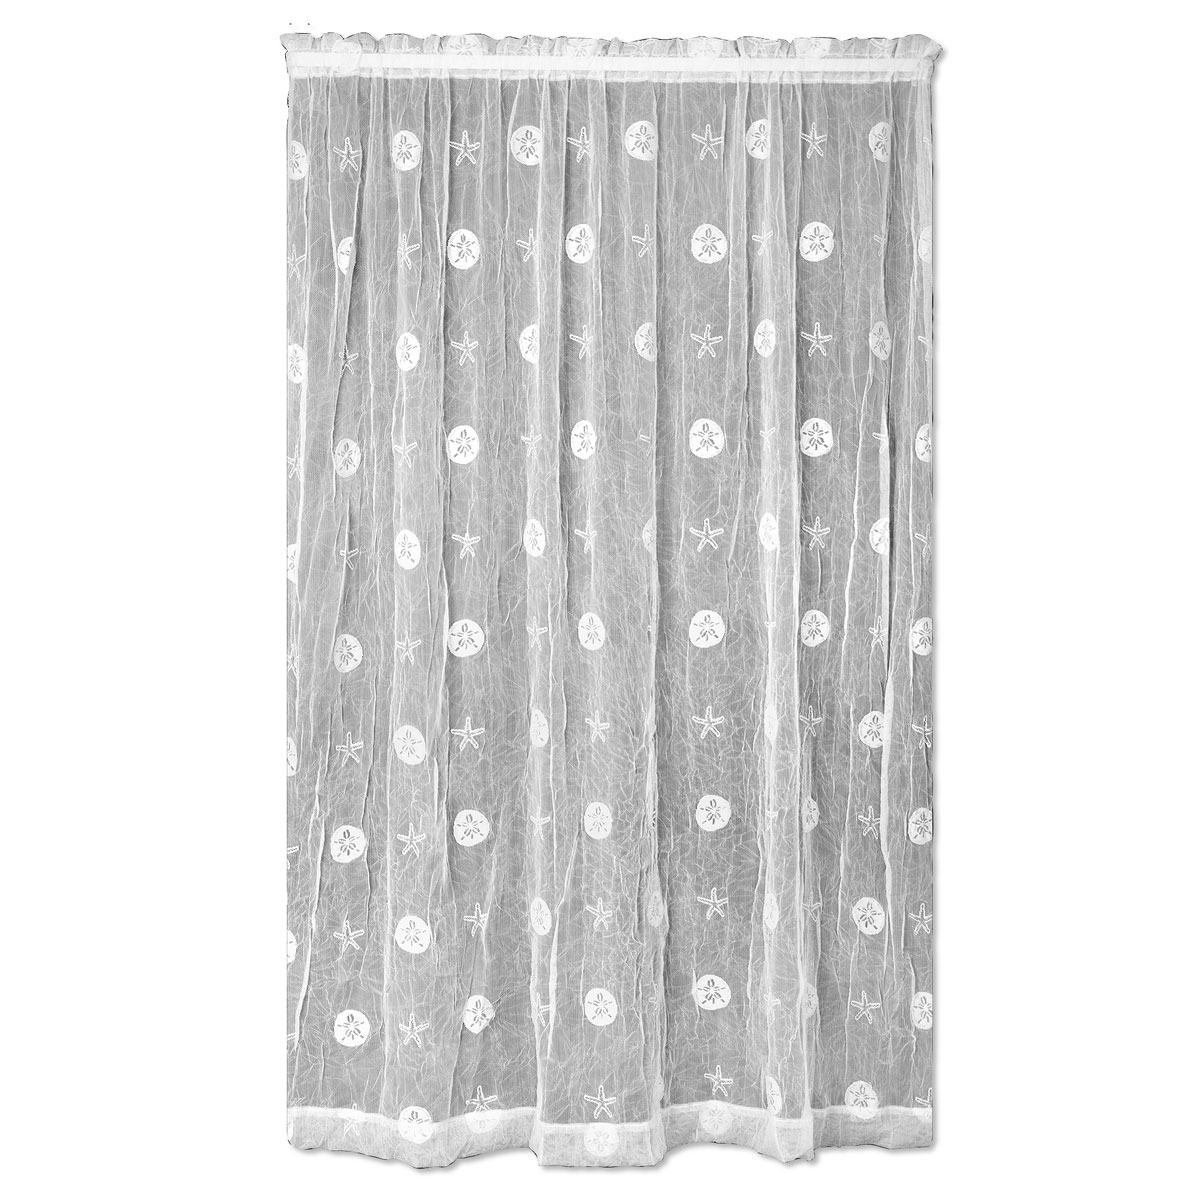 Coastal Window Treatments 45 X 72 Sand Dollar Lace Door Panelbella